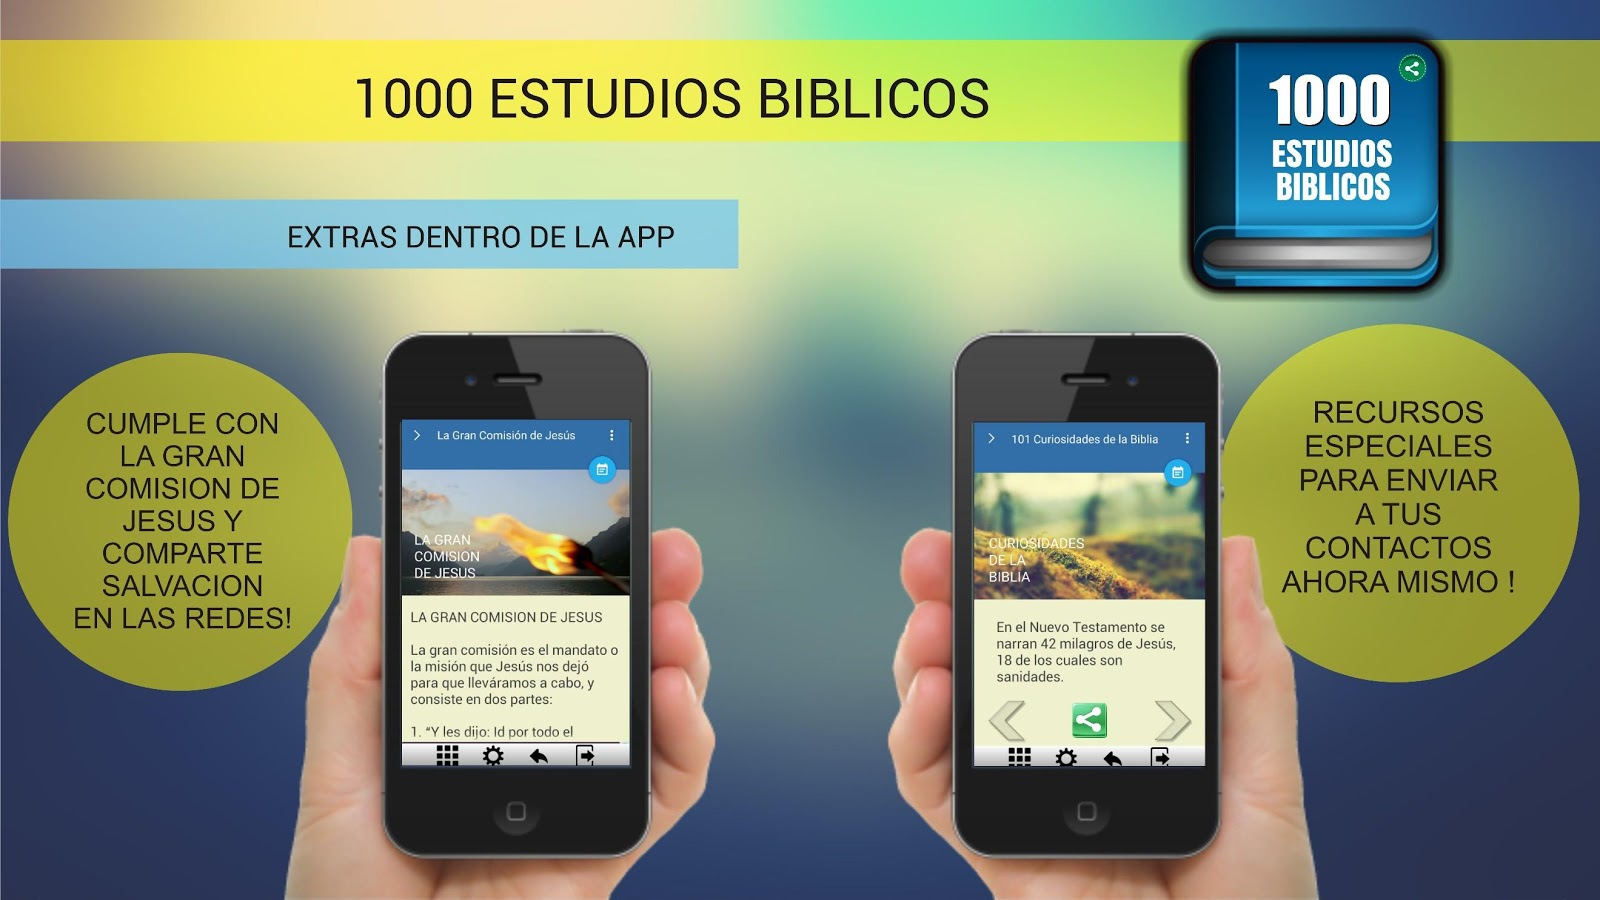 1000 Estudios Biblicos- screenshot